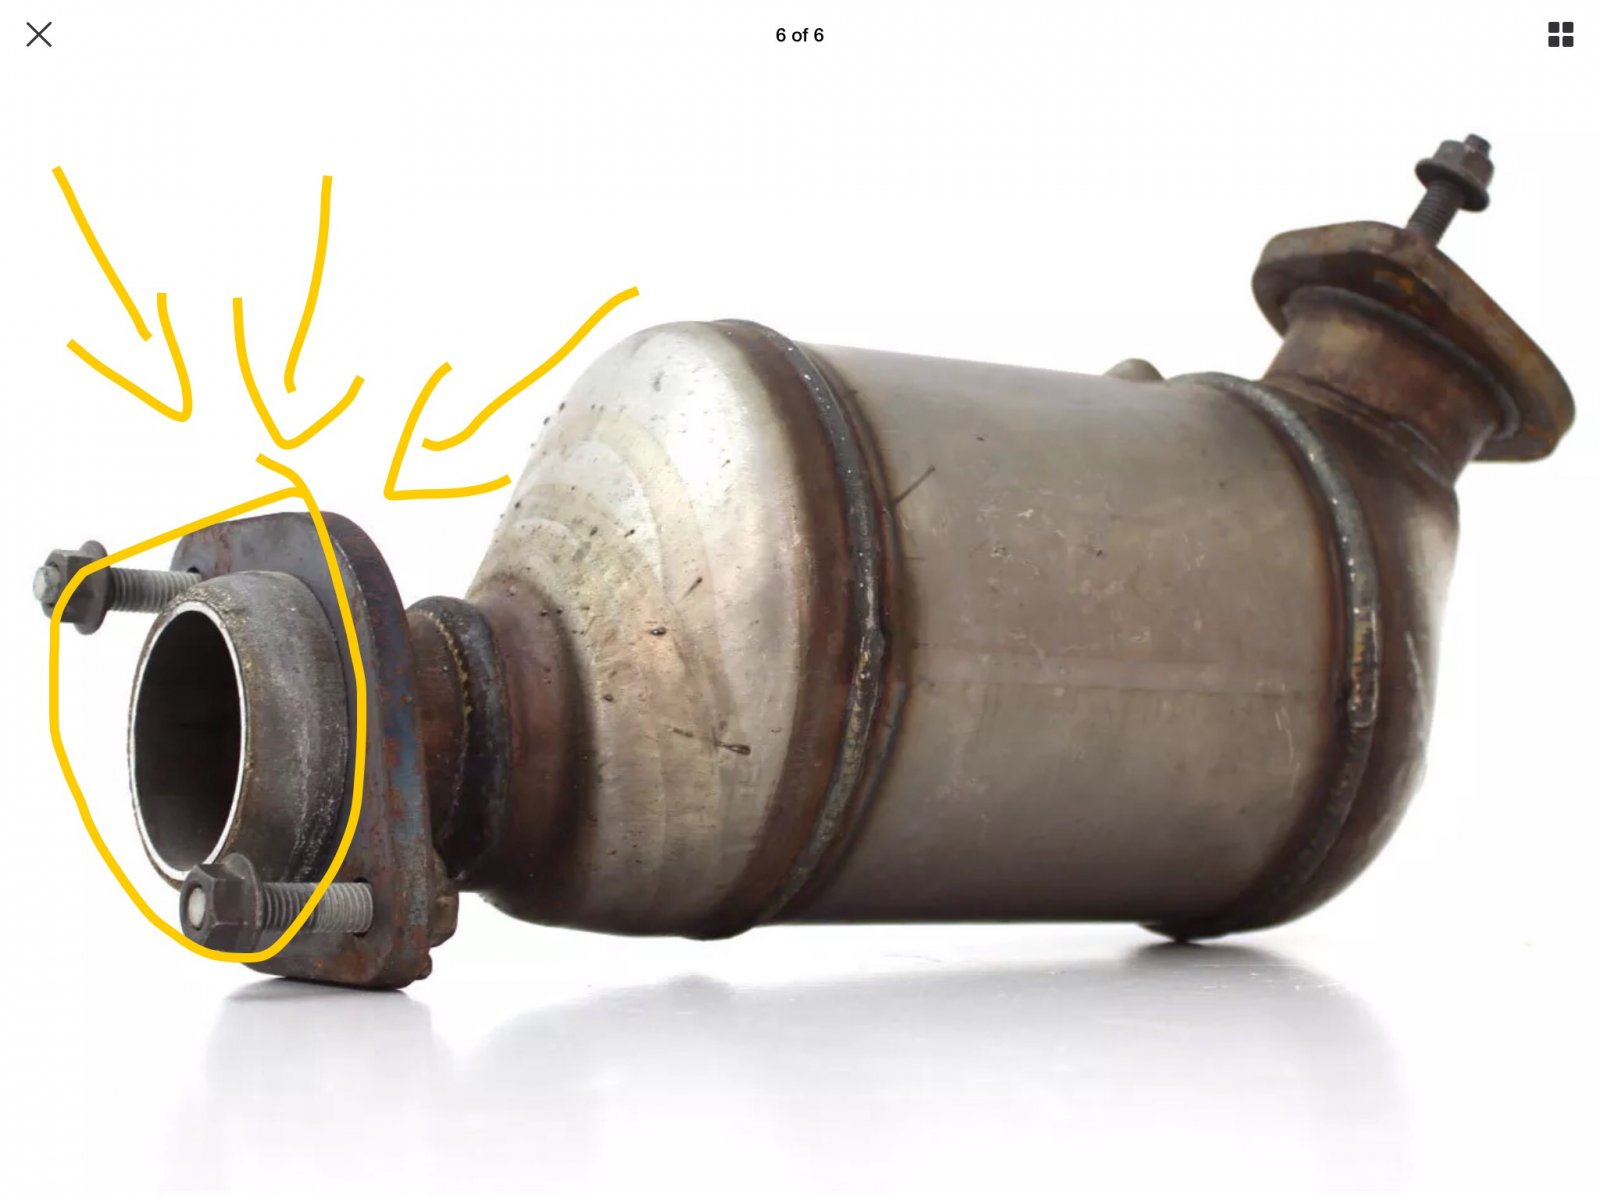 VE SV6 X-Force 2 25 cat back exhaust not fitting on cats